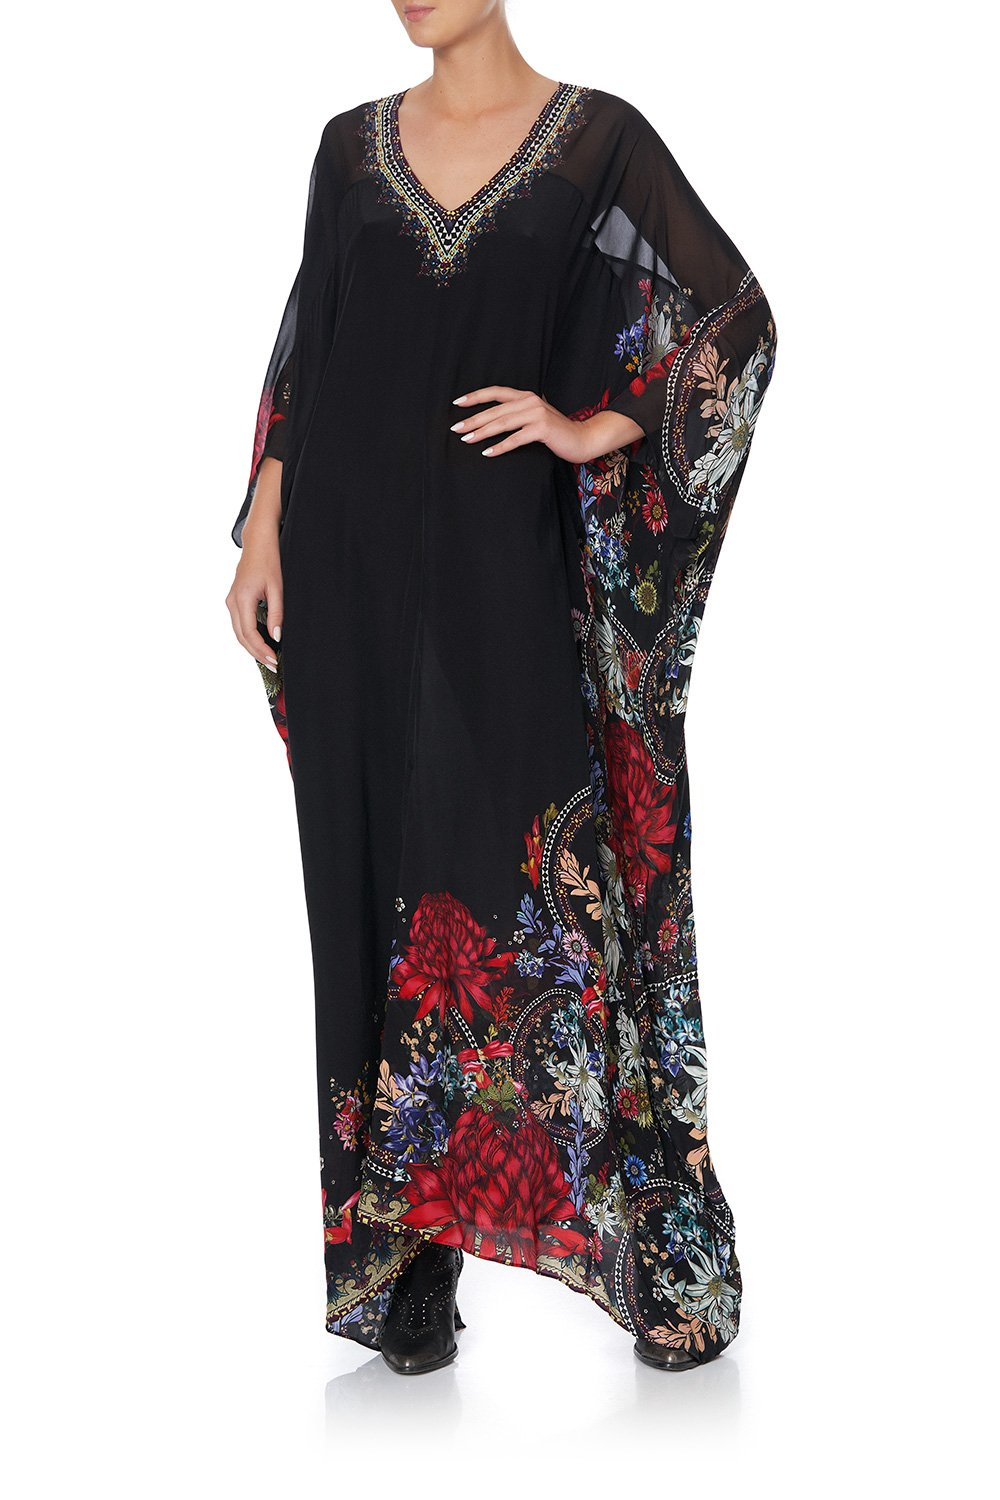 SPLIT FRONT KAFTAN WITH SEAMS MS MATILDA